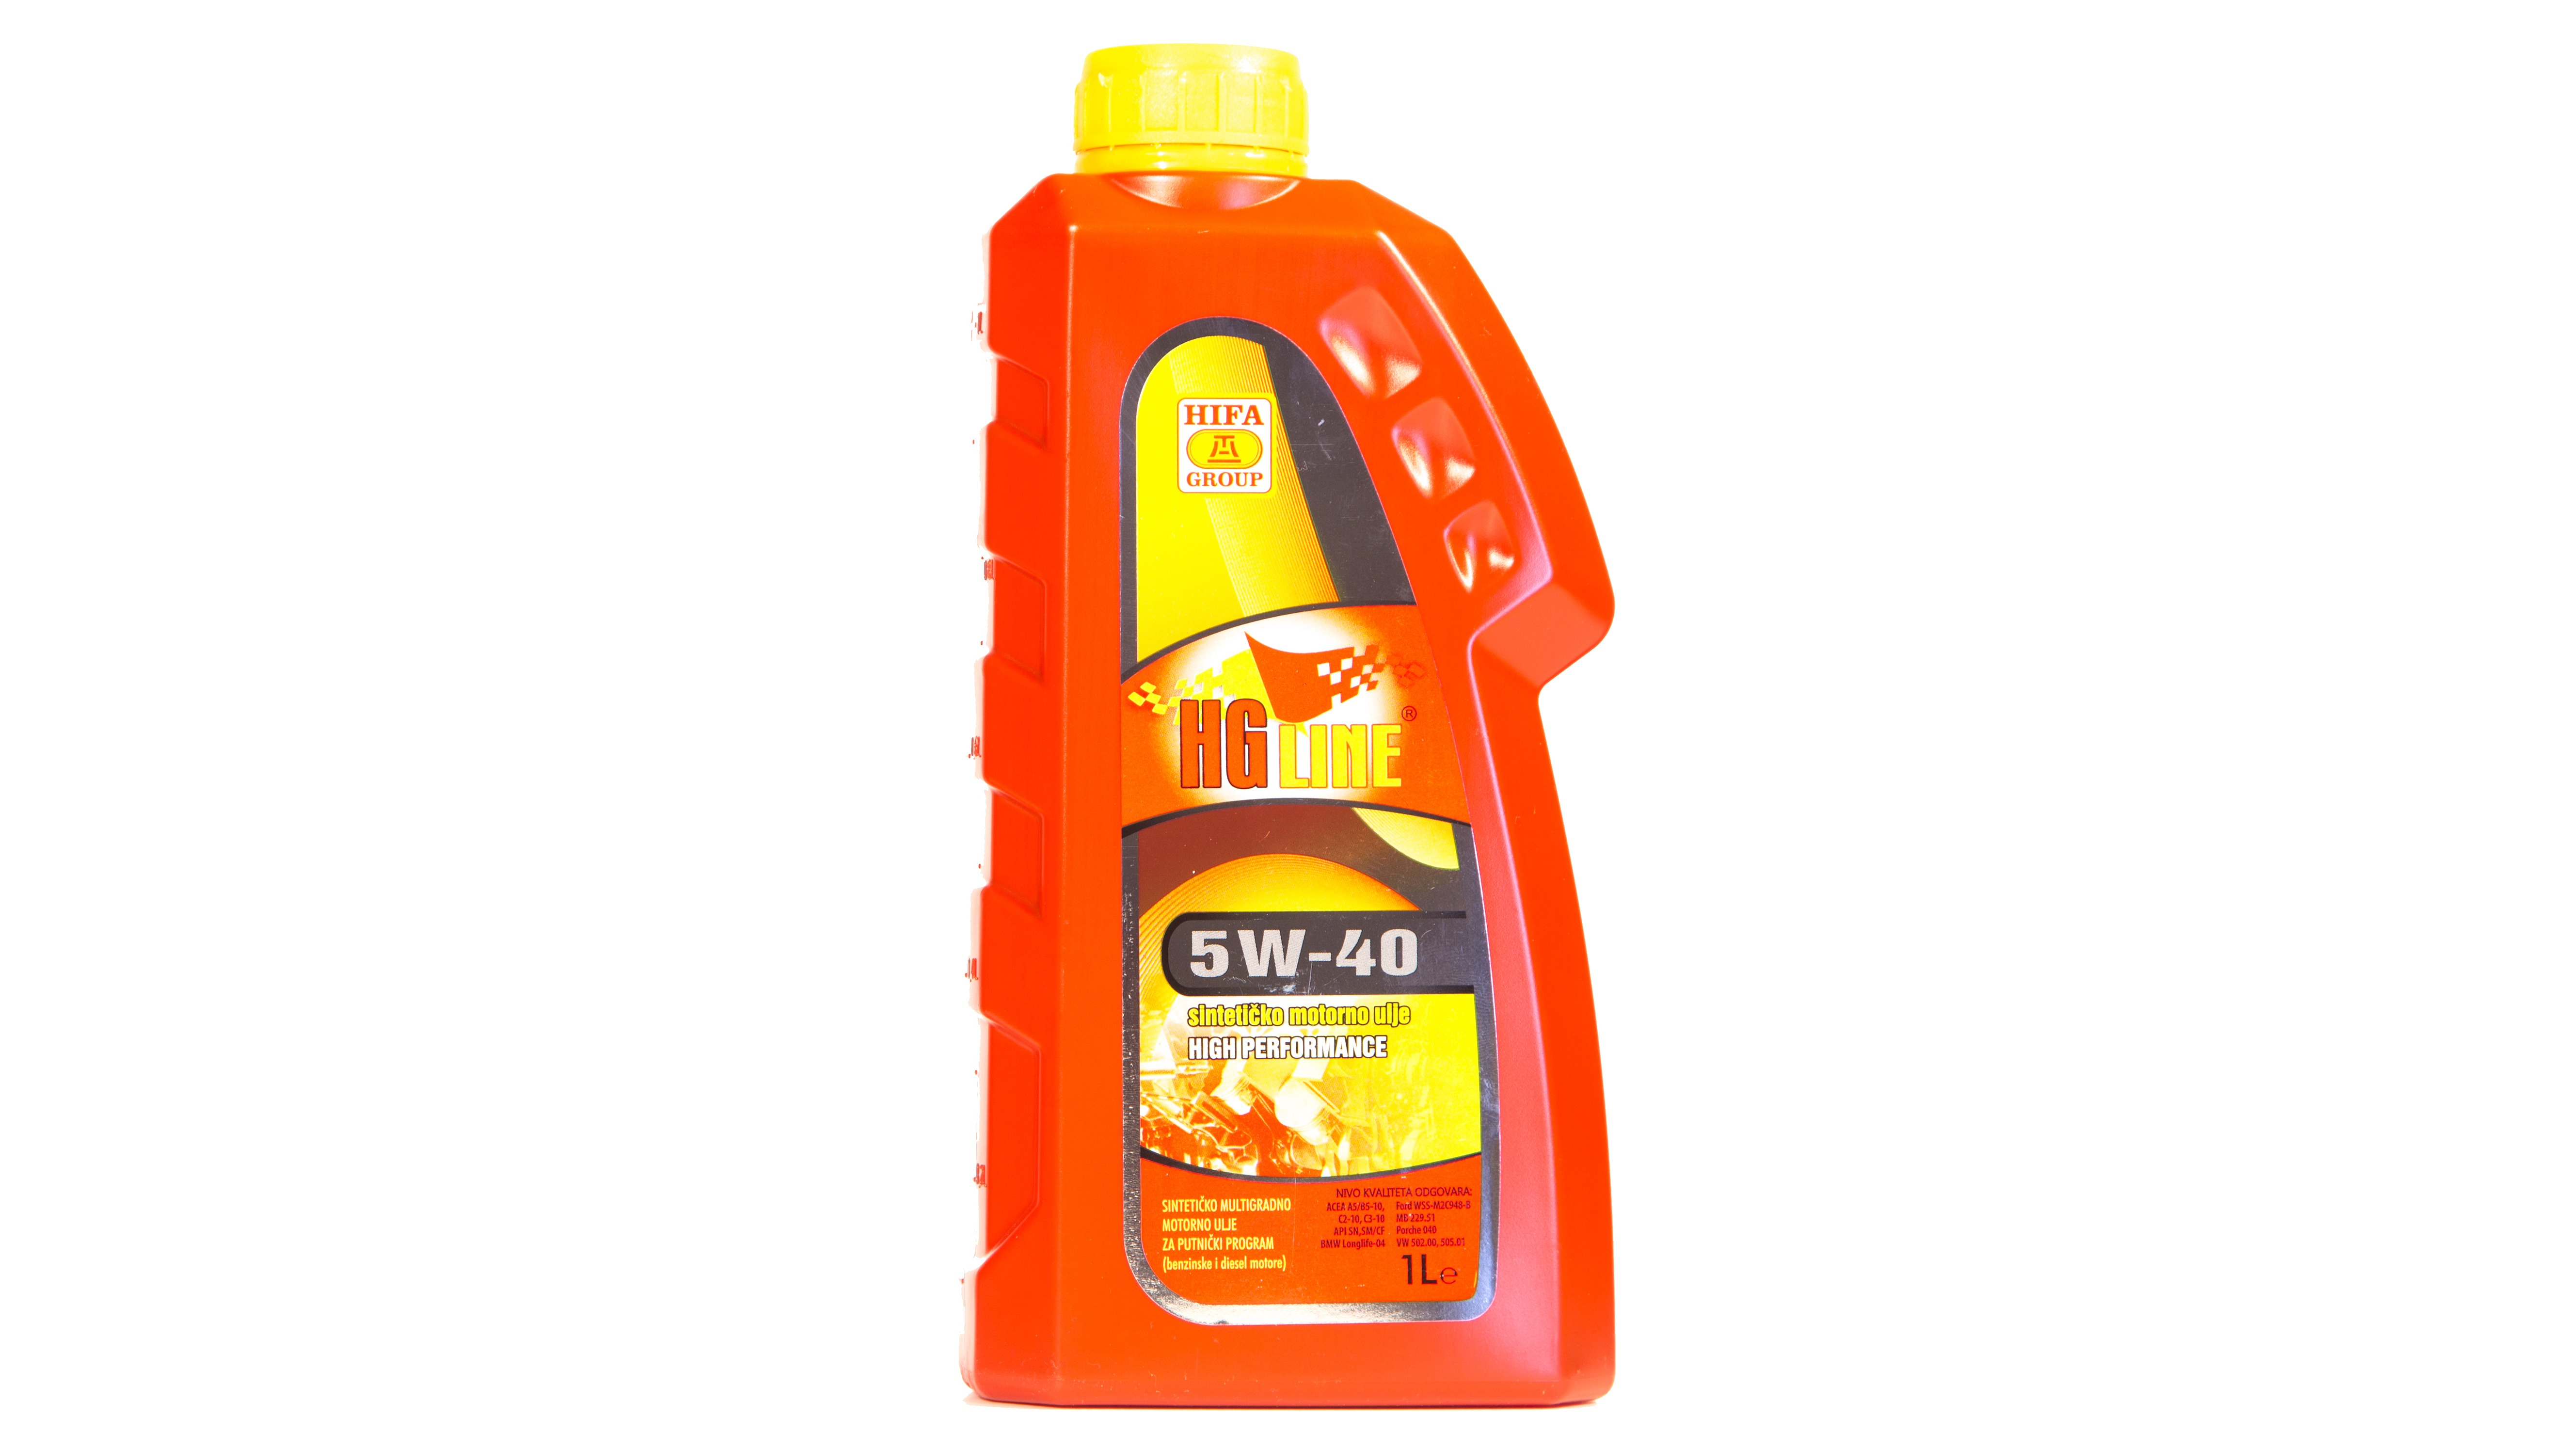 HGline 5W-40 -  High performance synthetitic multigrade motor oil